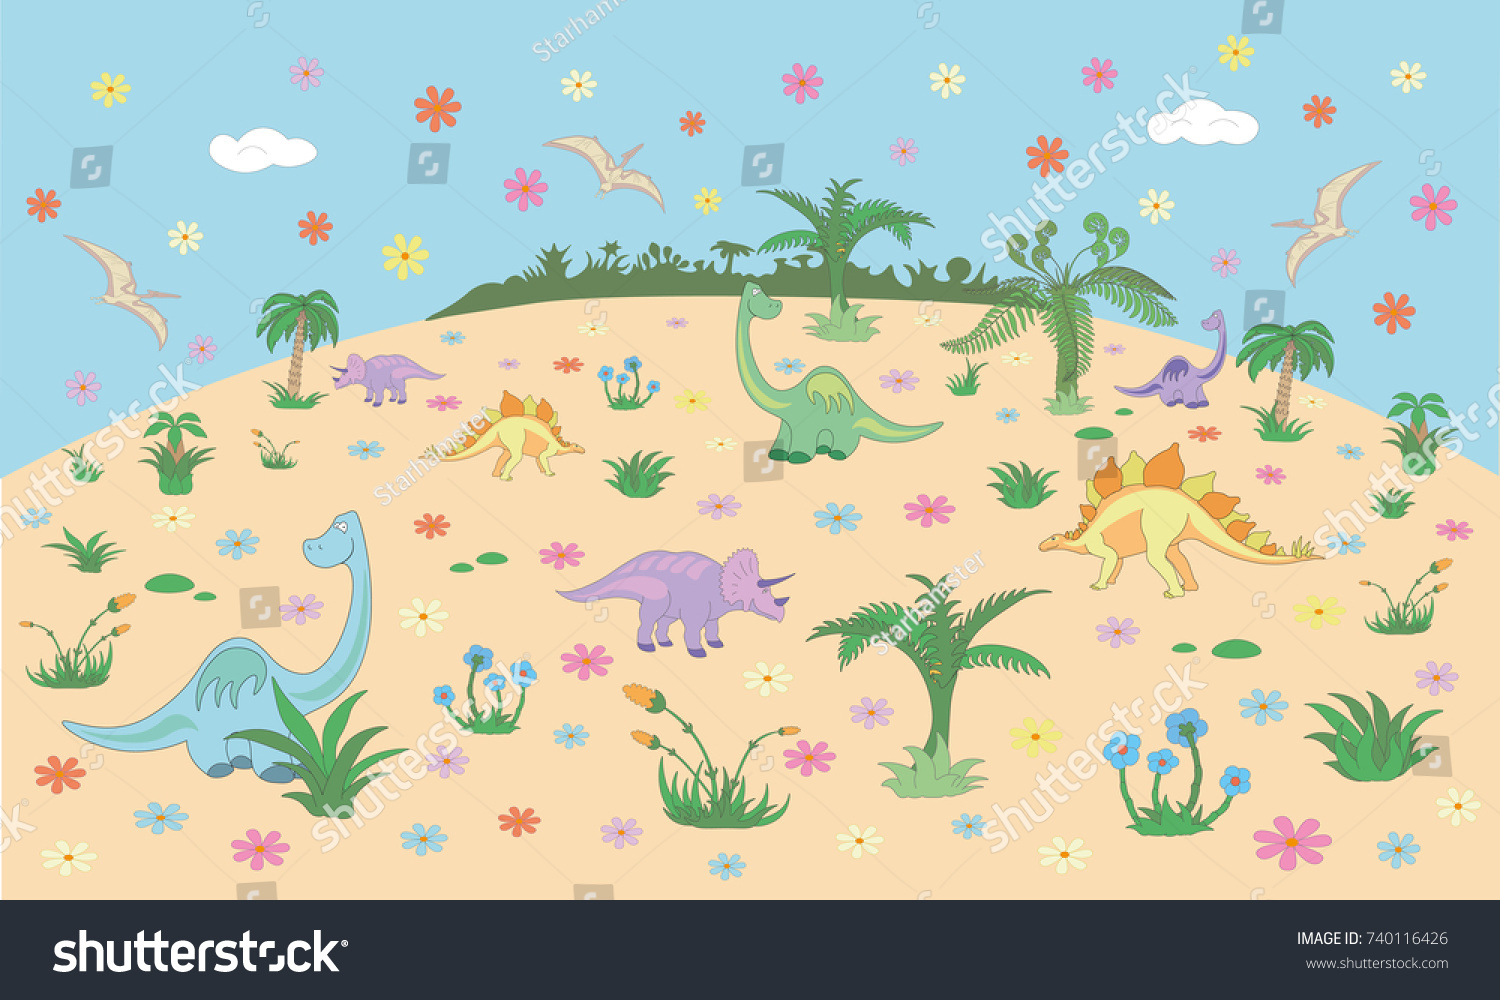 Beautiful Childrens Room Wall Design Kids Stock Vector (Royalty Free ...